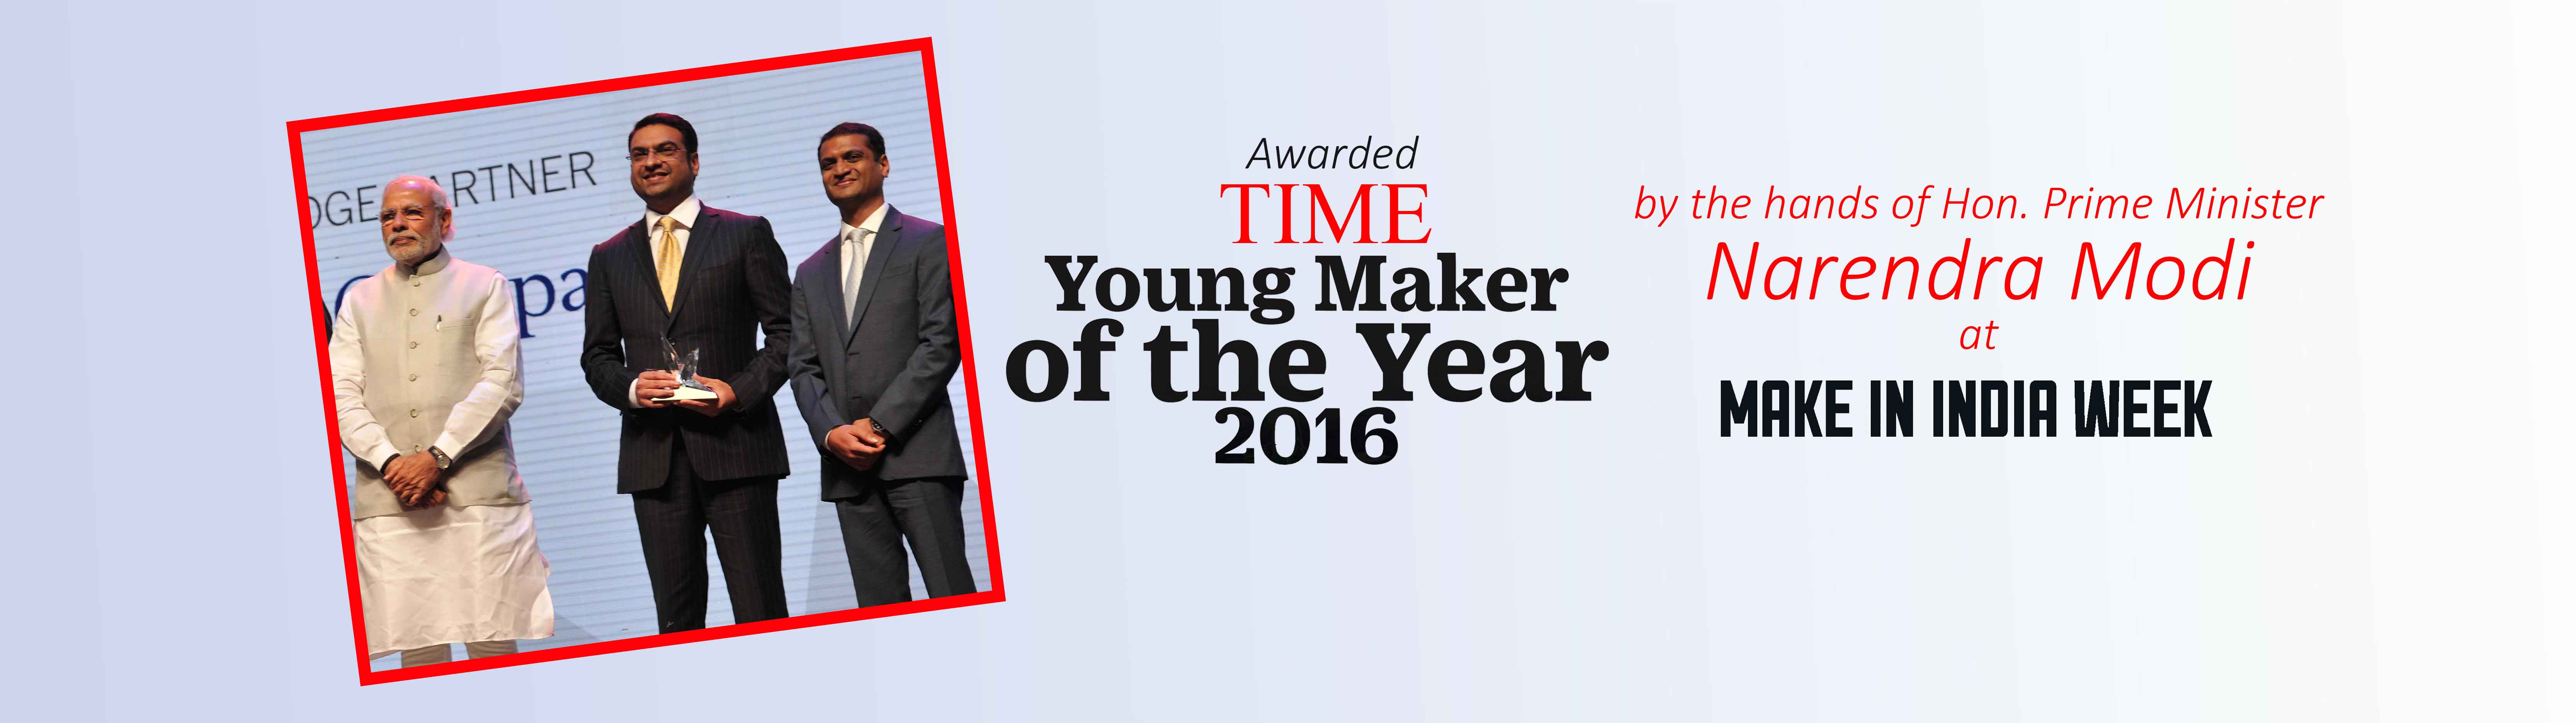 TIME Young Maker of the Year